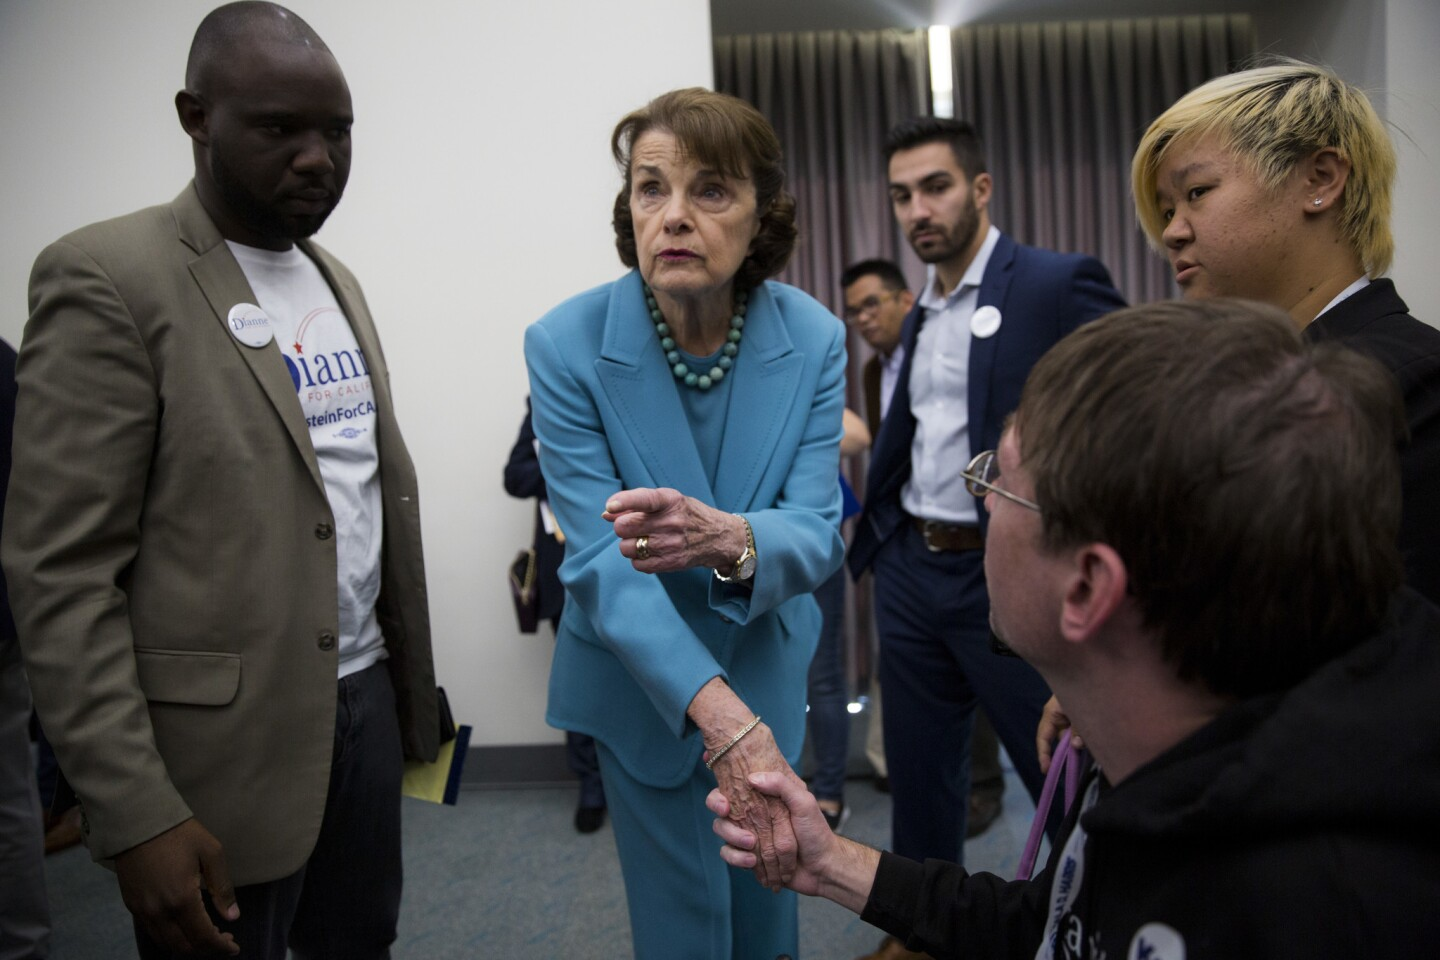 Senator Dianne Feinstein greets people after speaking to the Environmental Caucus at the Democrats State Convention.